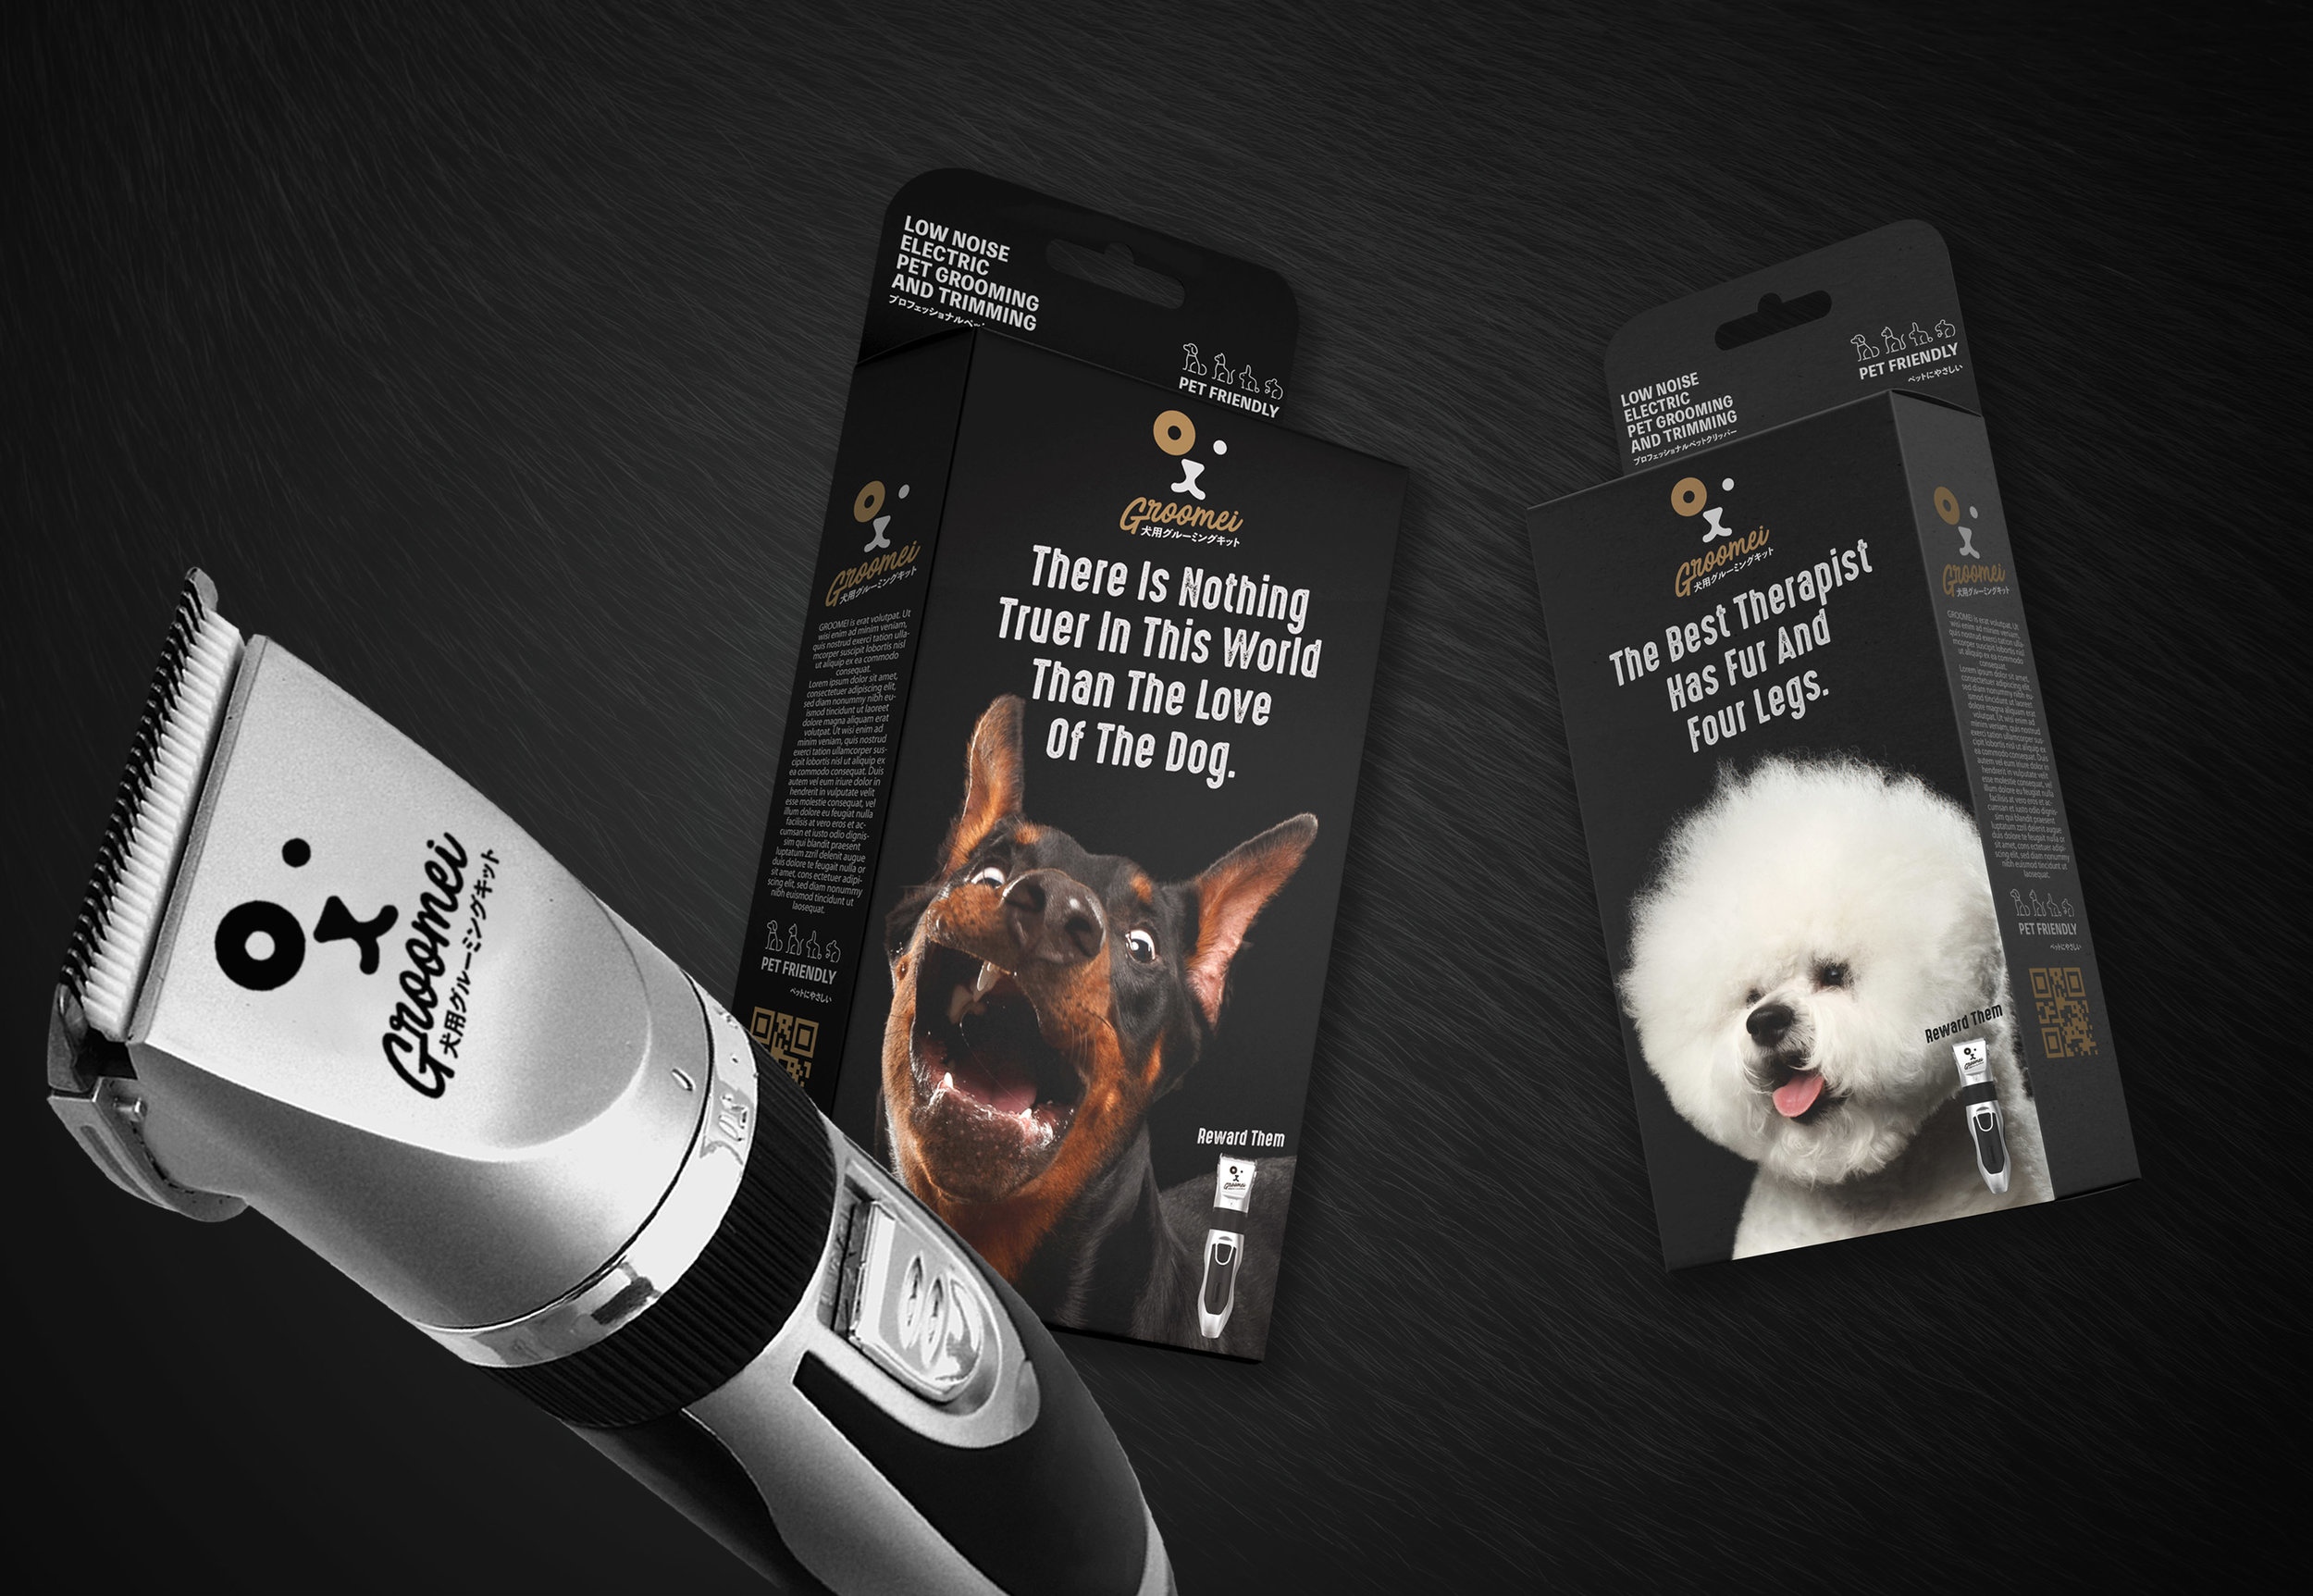 GROOMEI Pet Grooming Kit Packaging BRAND DESIGN World Brand Design